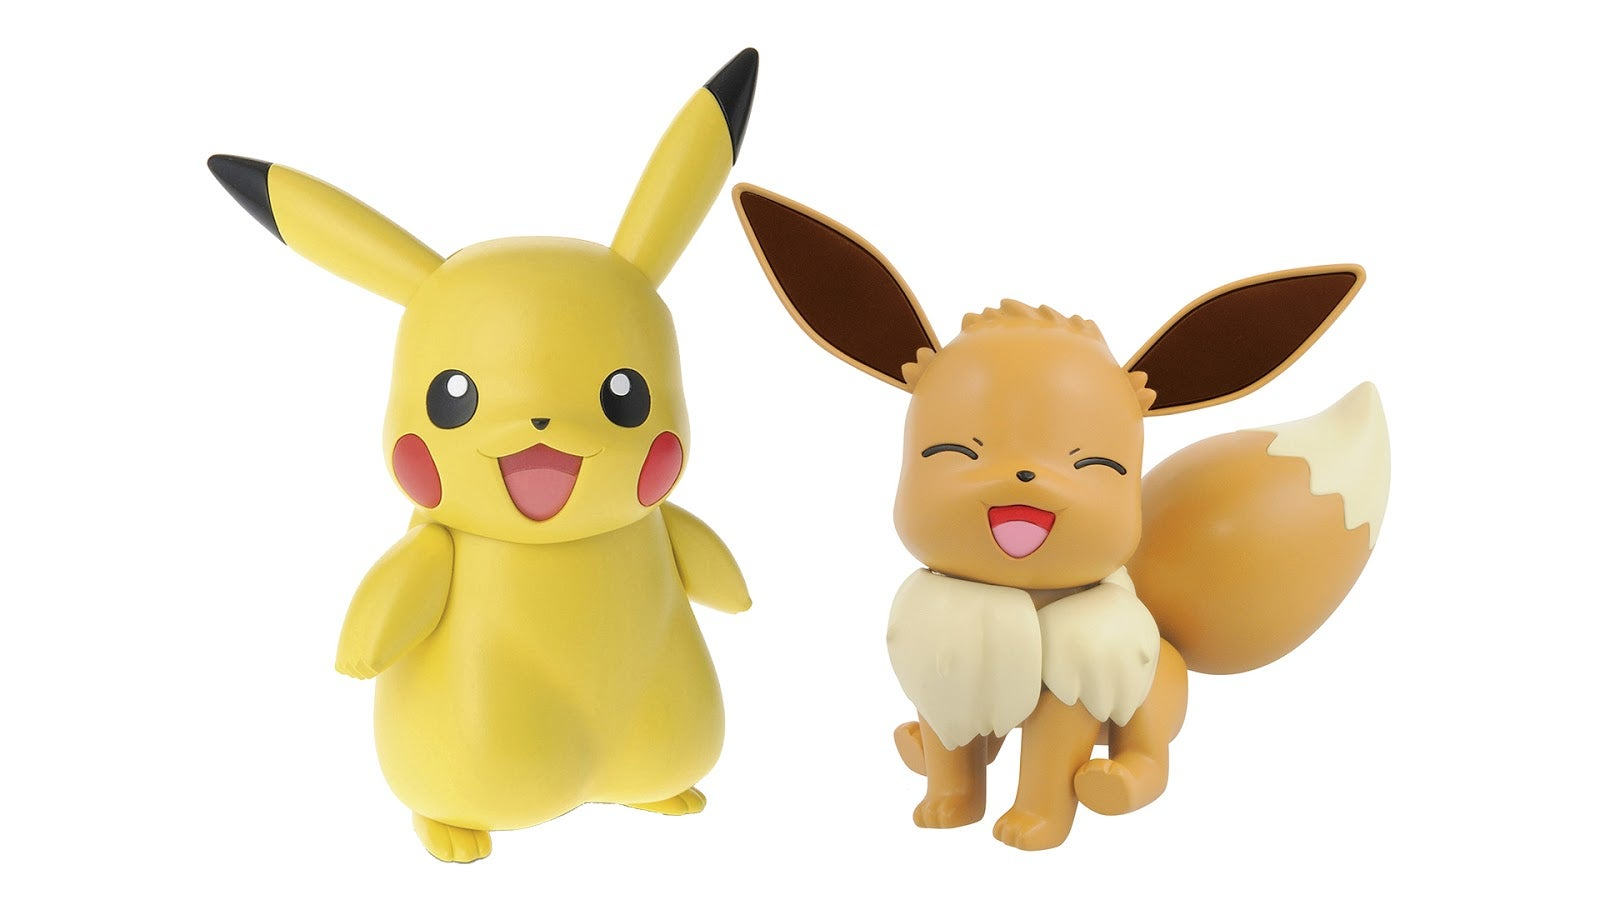 New Model Kits Let You Build Your Own Damn Pokémon